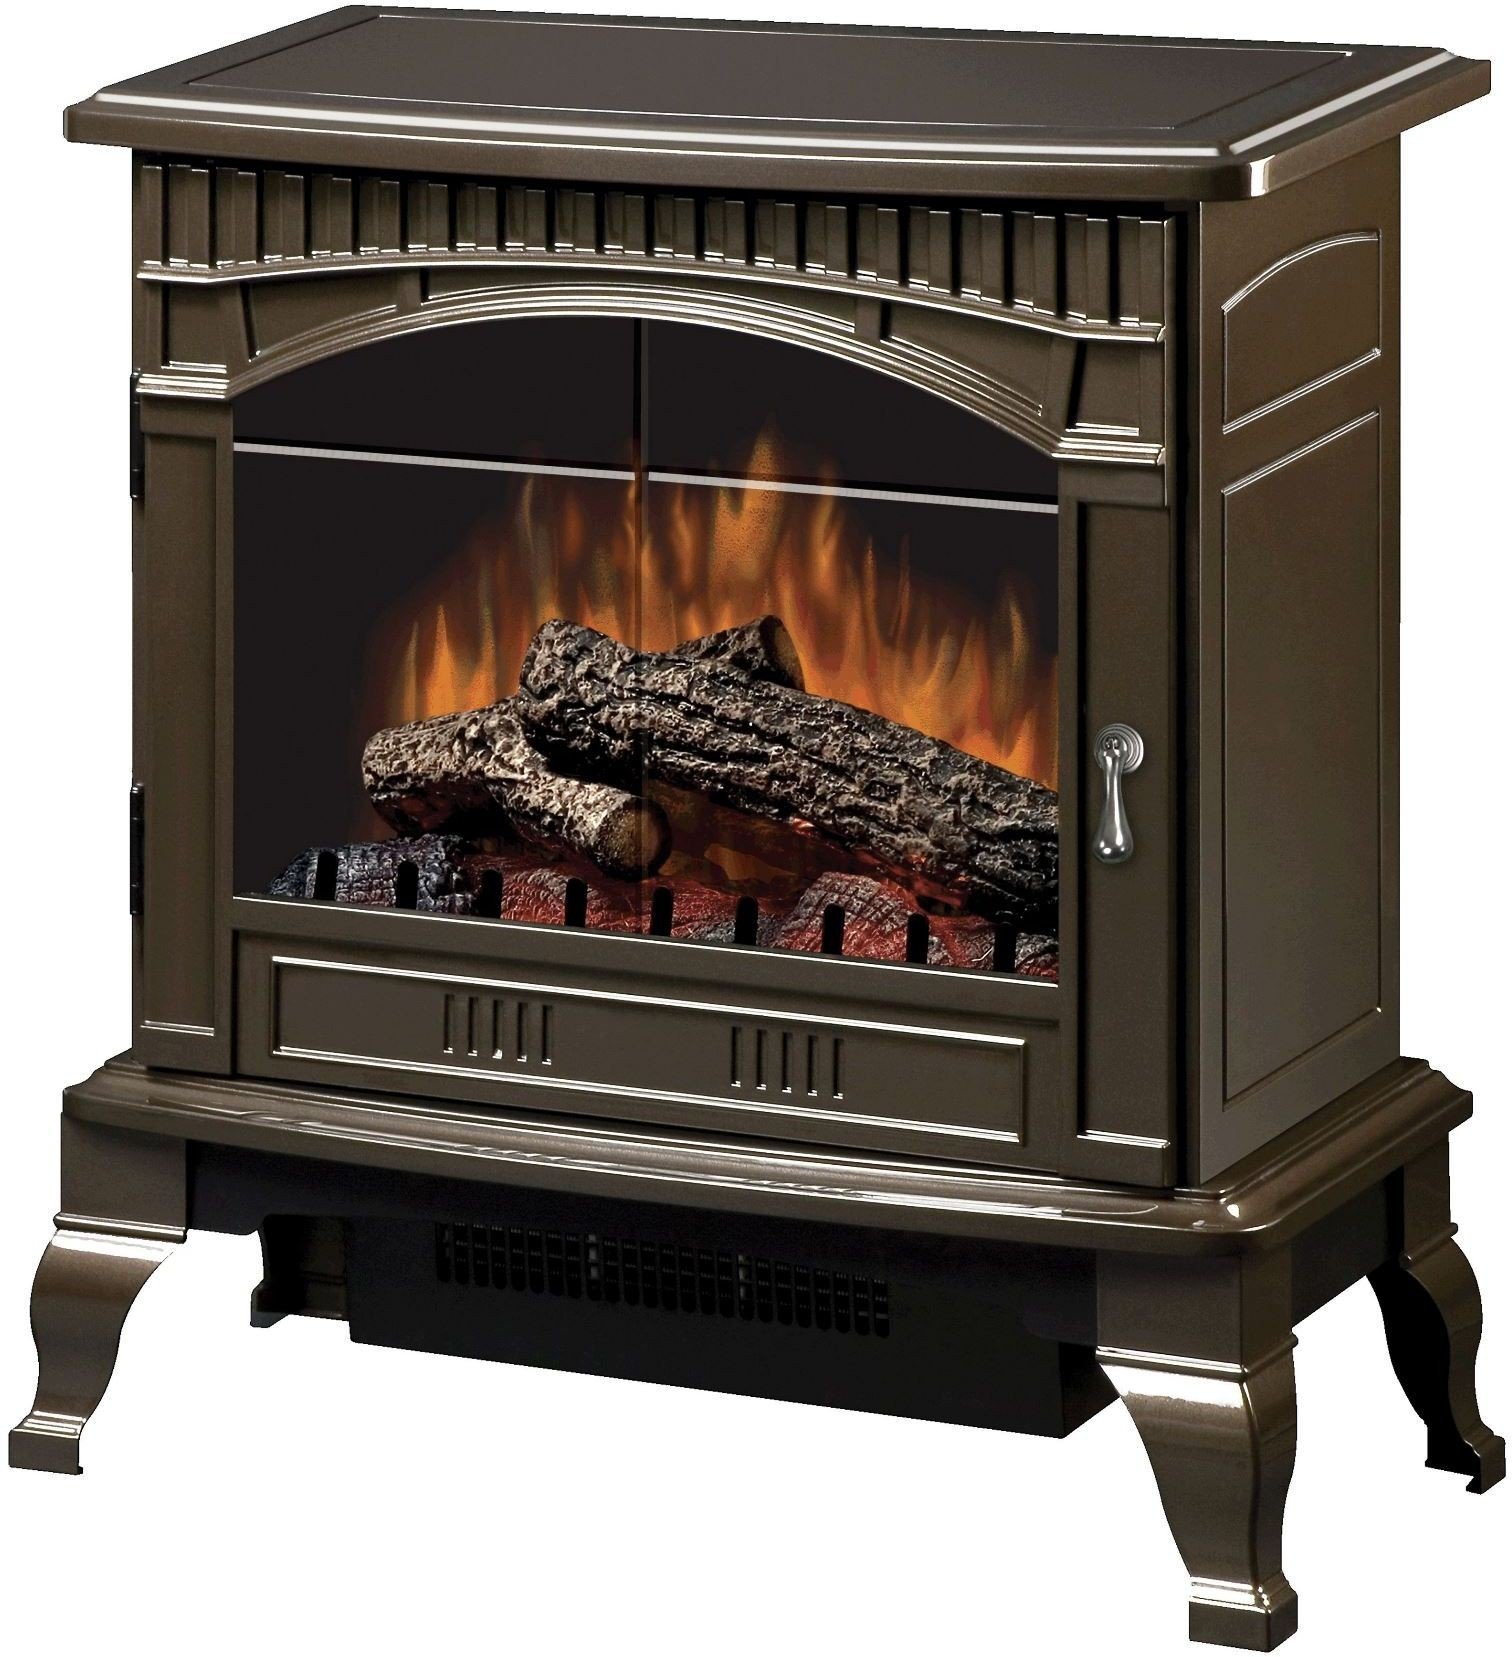 Gross Bronze Electric Stove From Dimplex Coleman Furniture